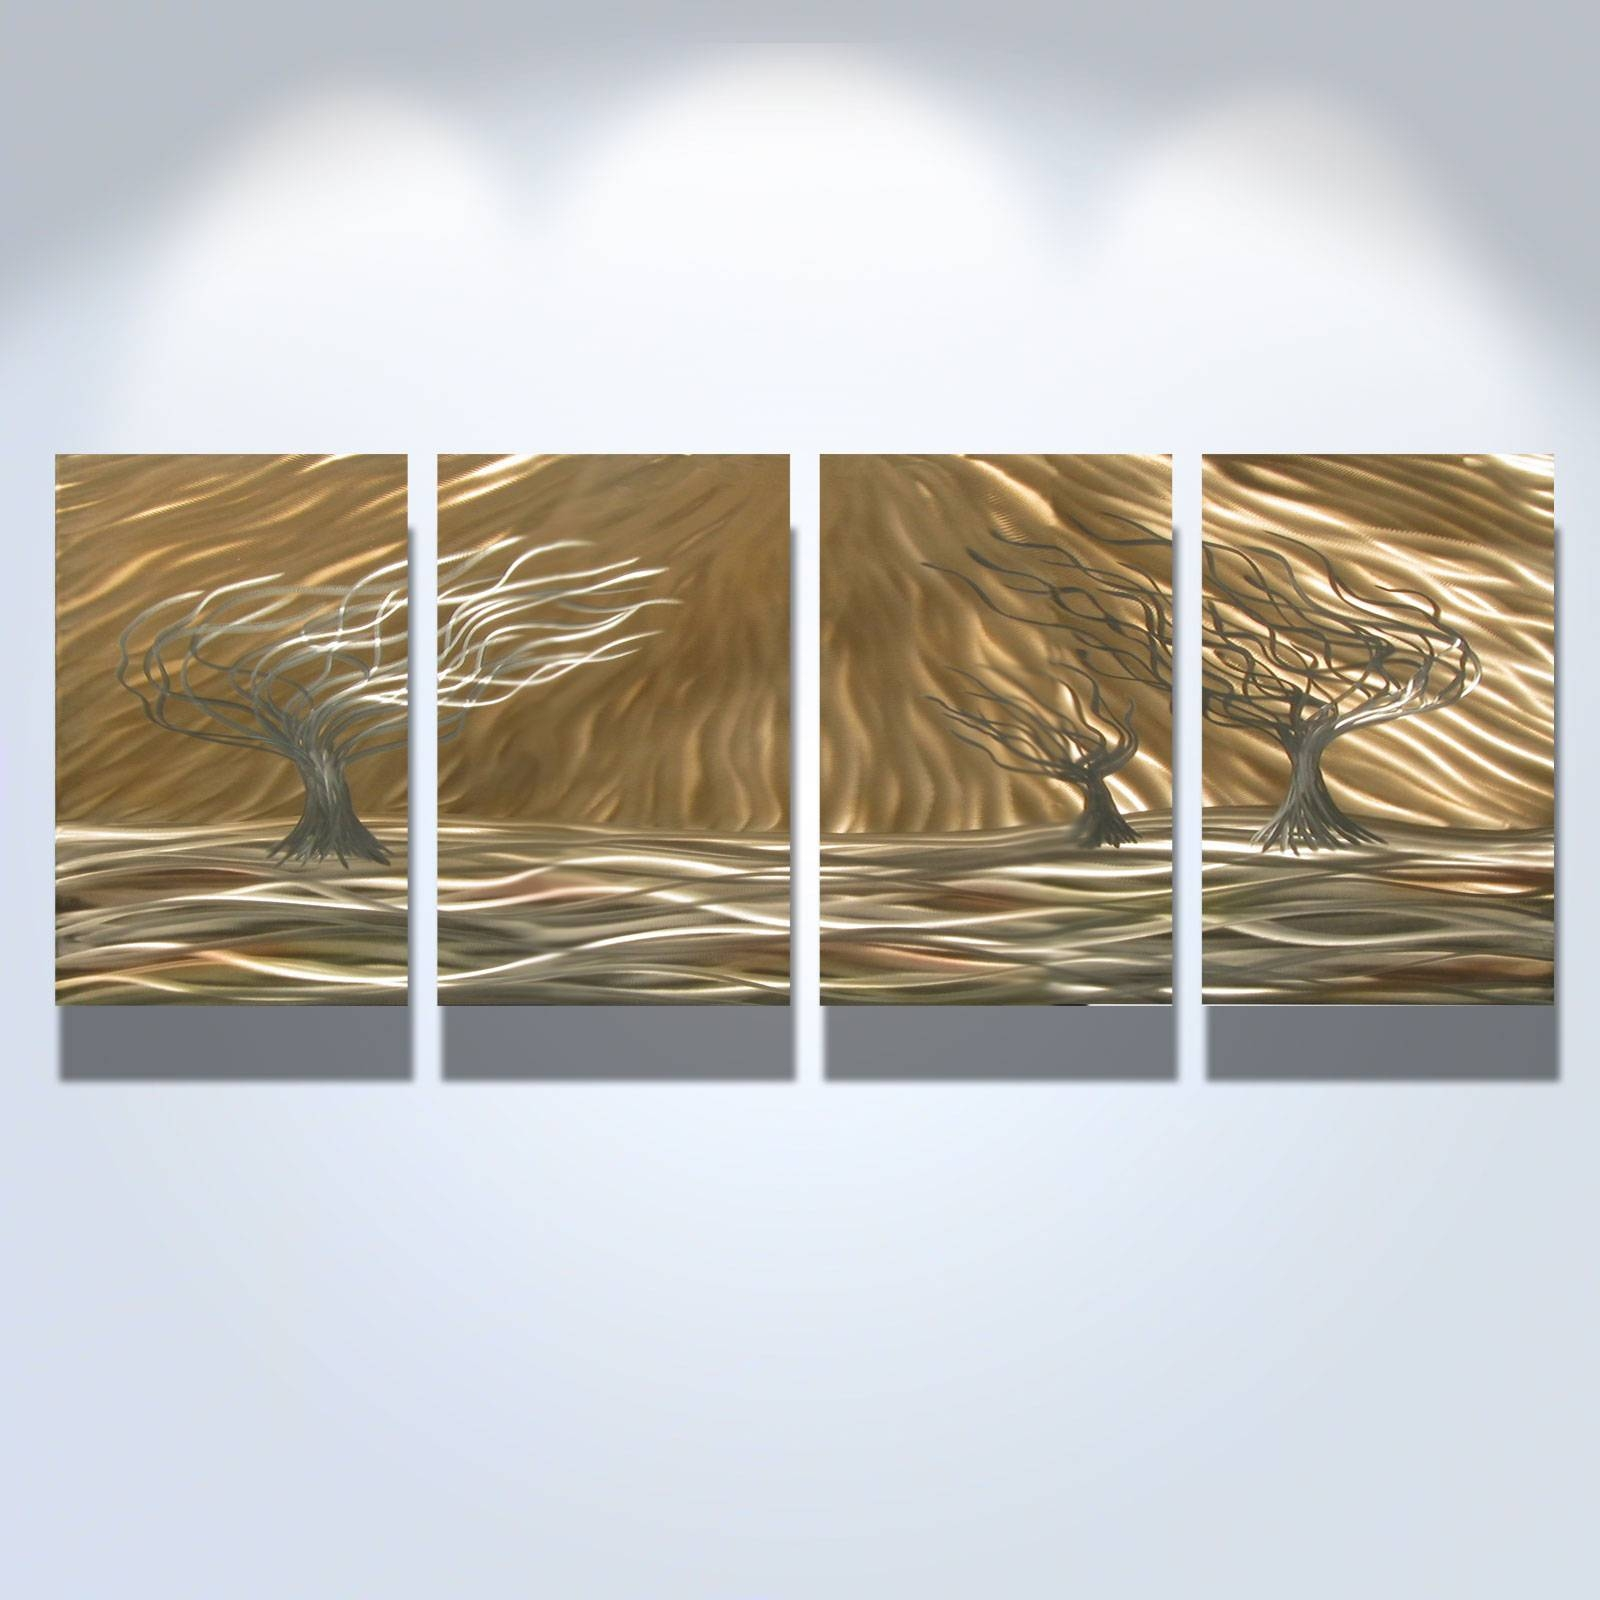 3 Trees 4 Panel – Abstract Metal Wall Art Contemporary Modern Inside 2017 Contemporary Metal Wall Art Decor (View 2 of 20)